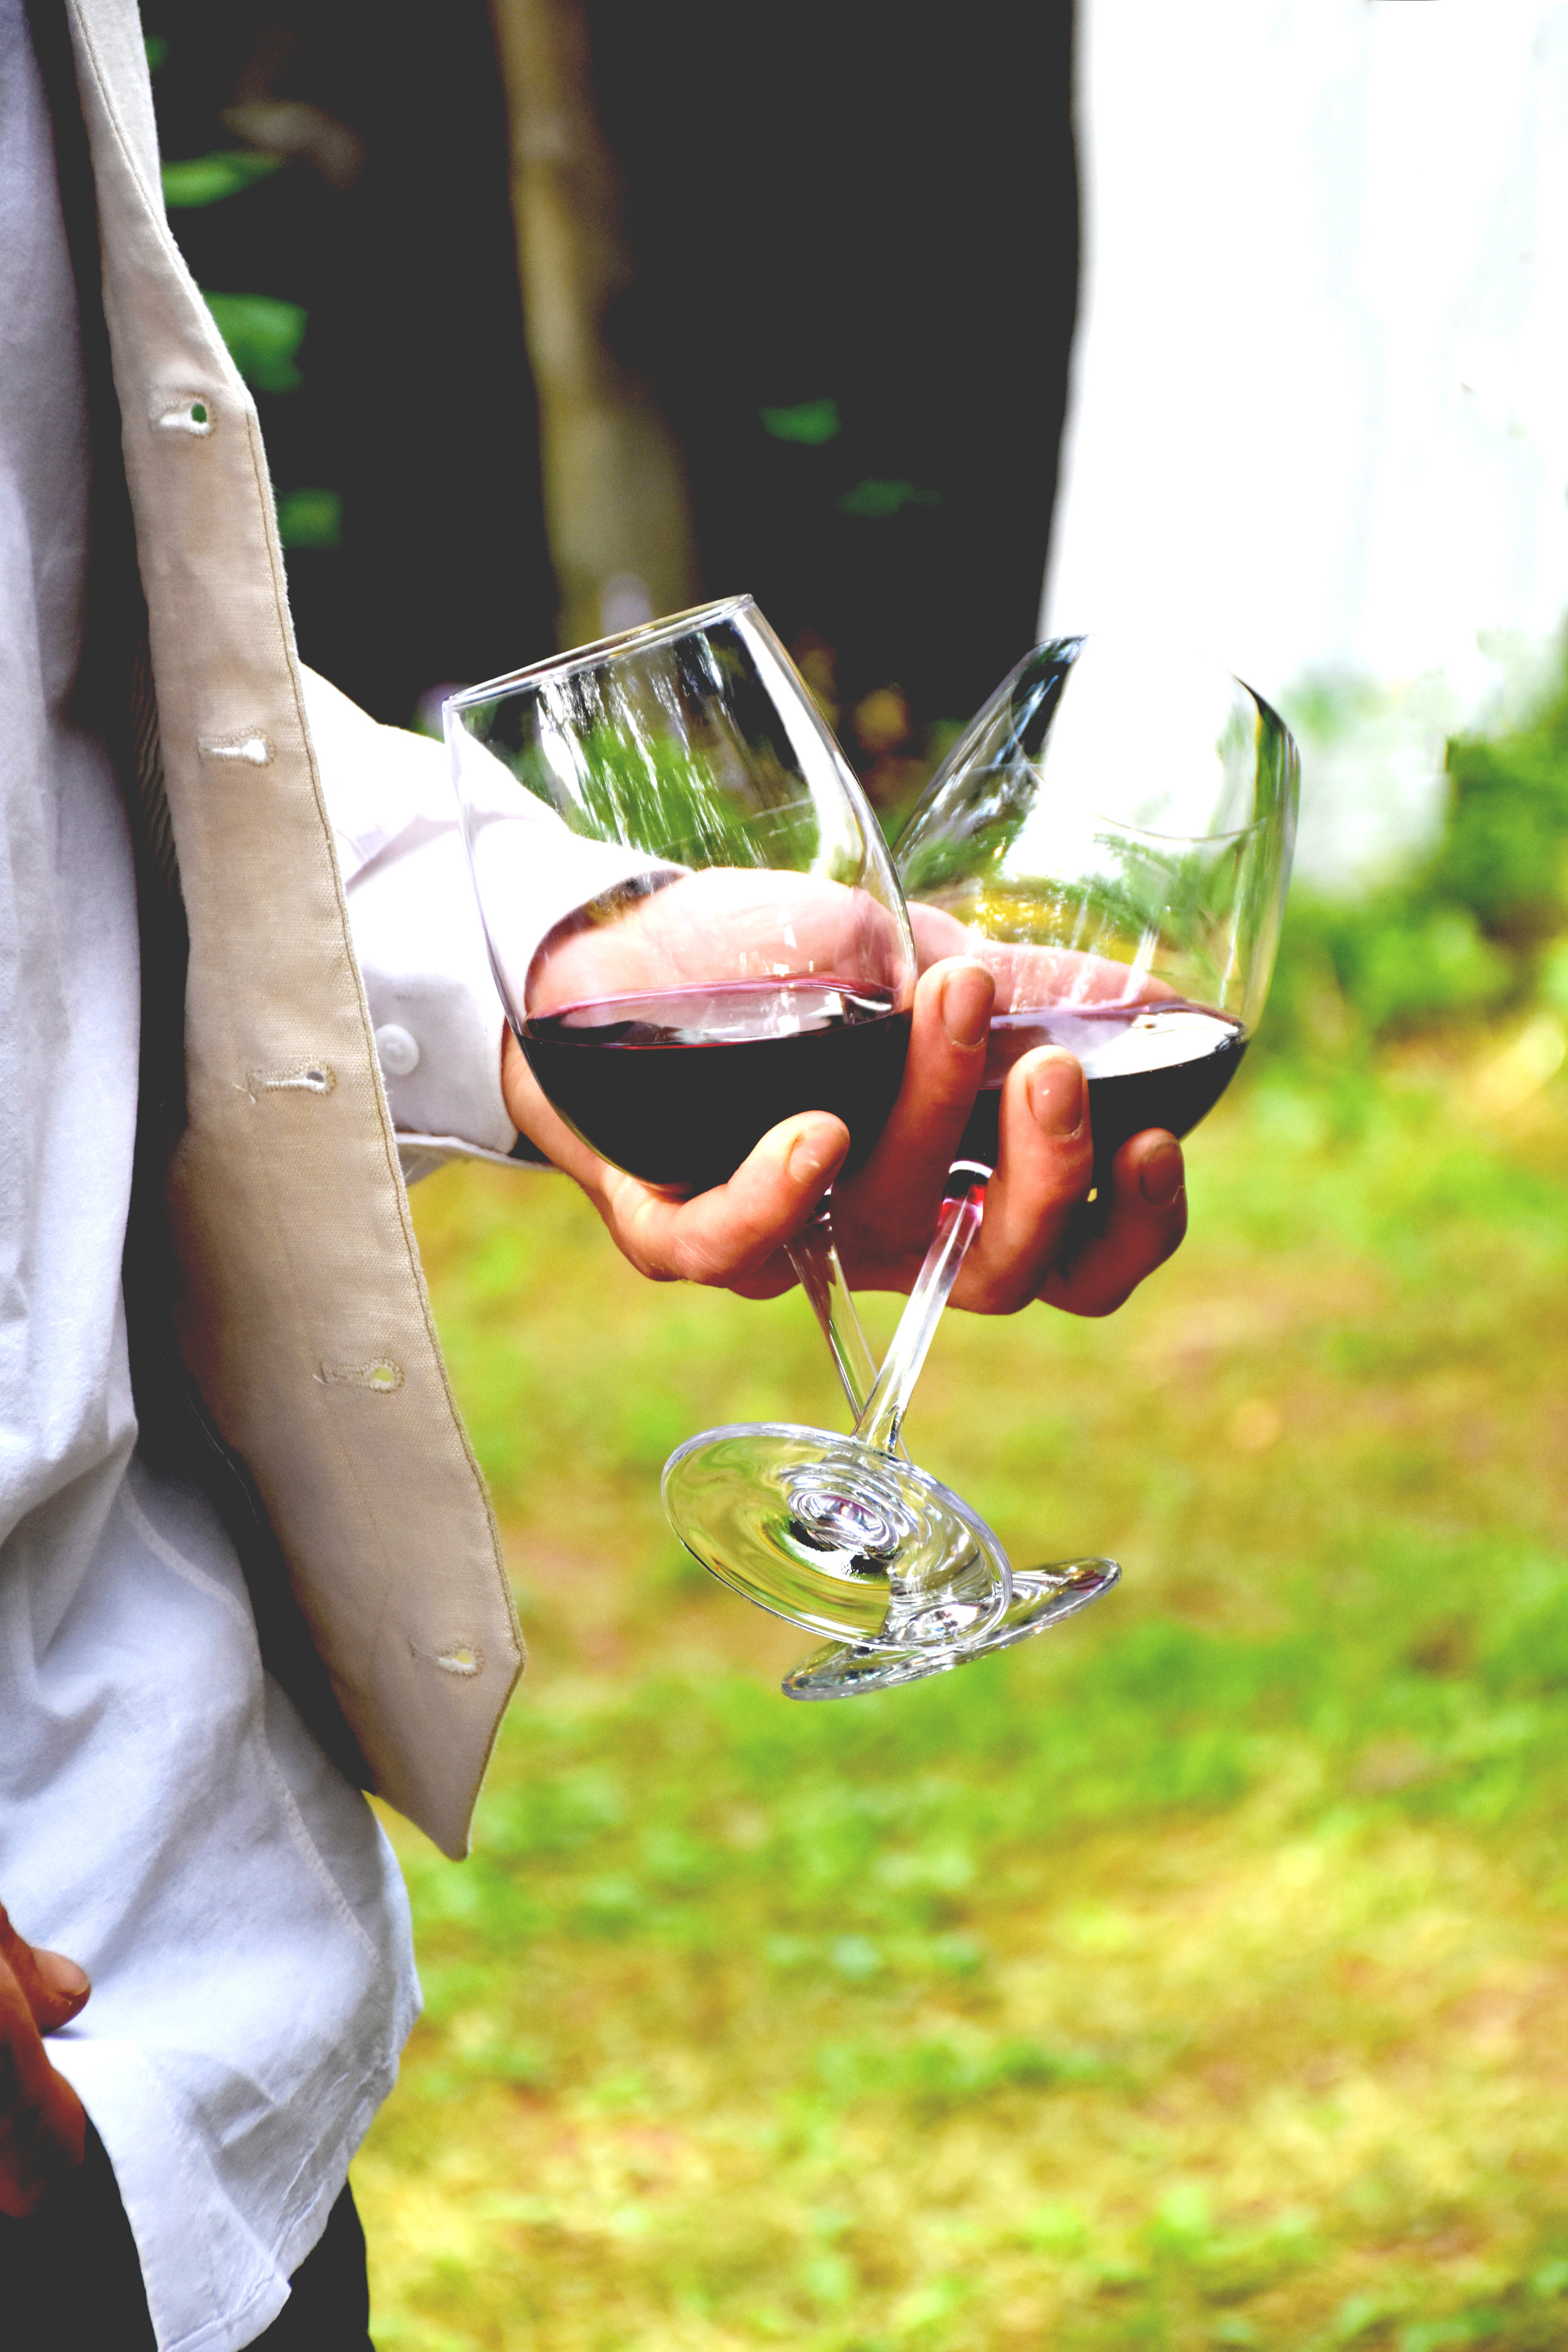 groom with wine glass in hand.jpg